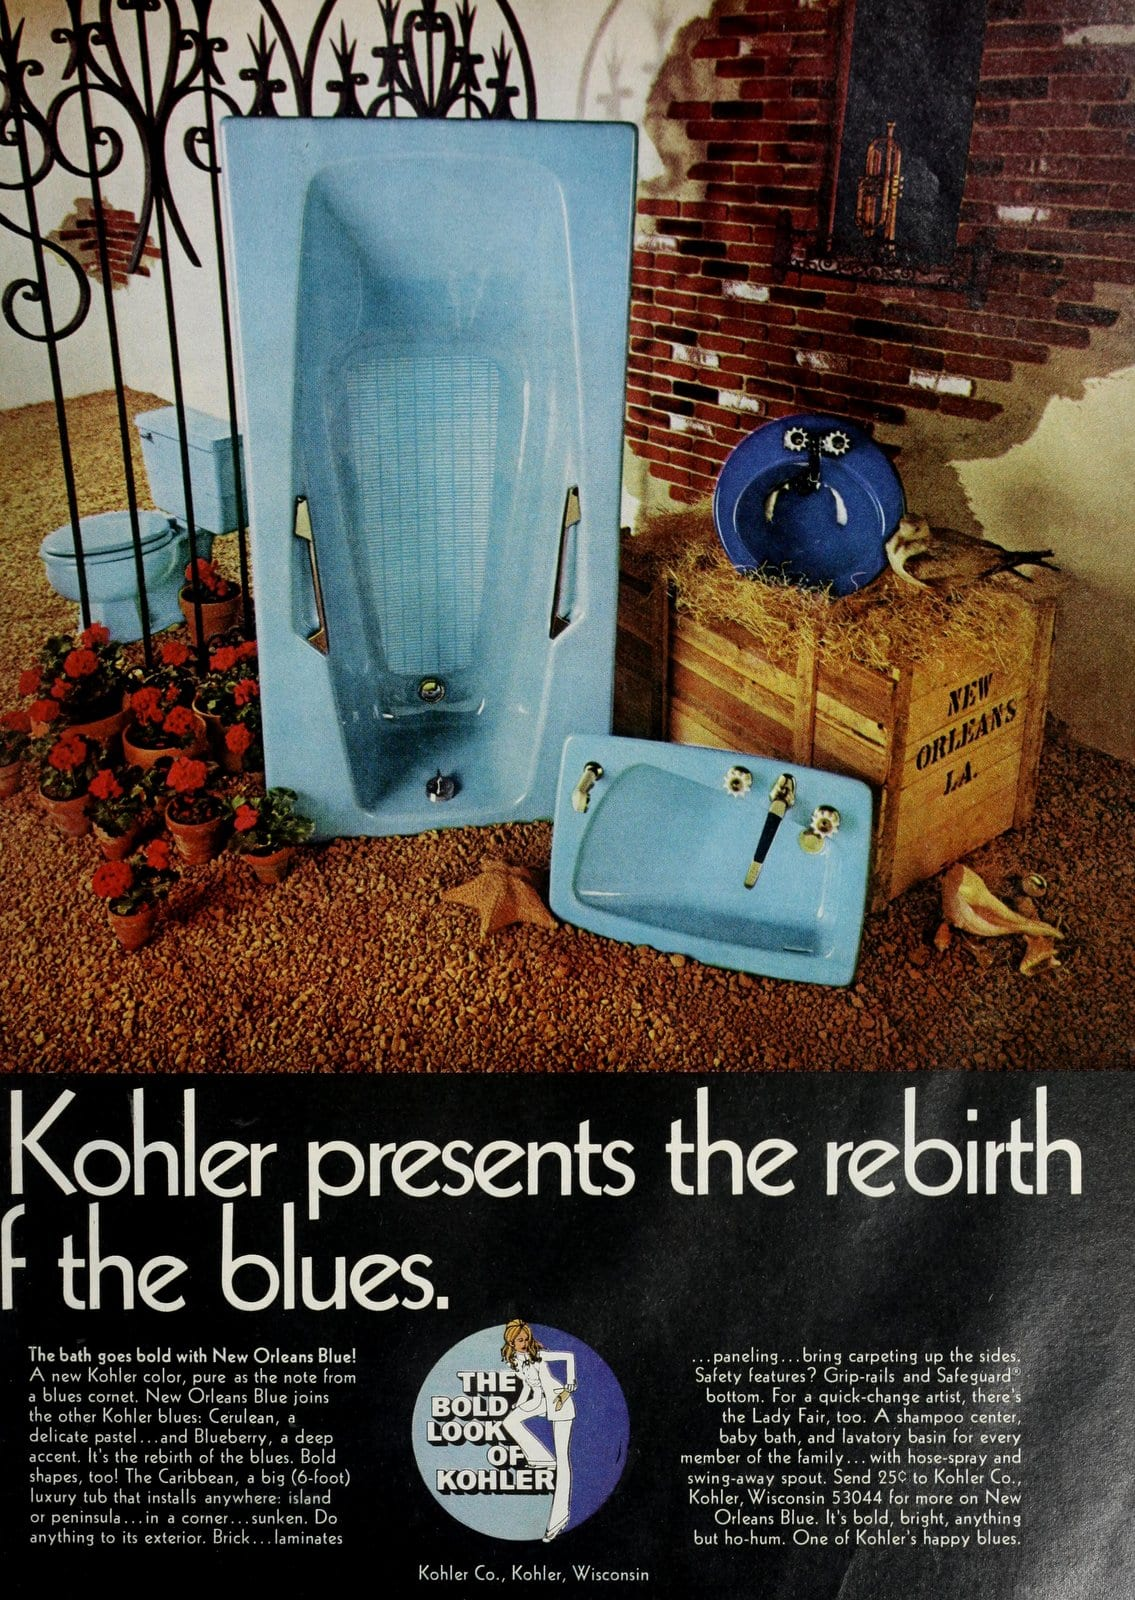 Vintage 60s blue Kohler bathroom suites (1969)